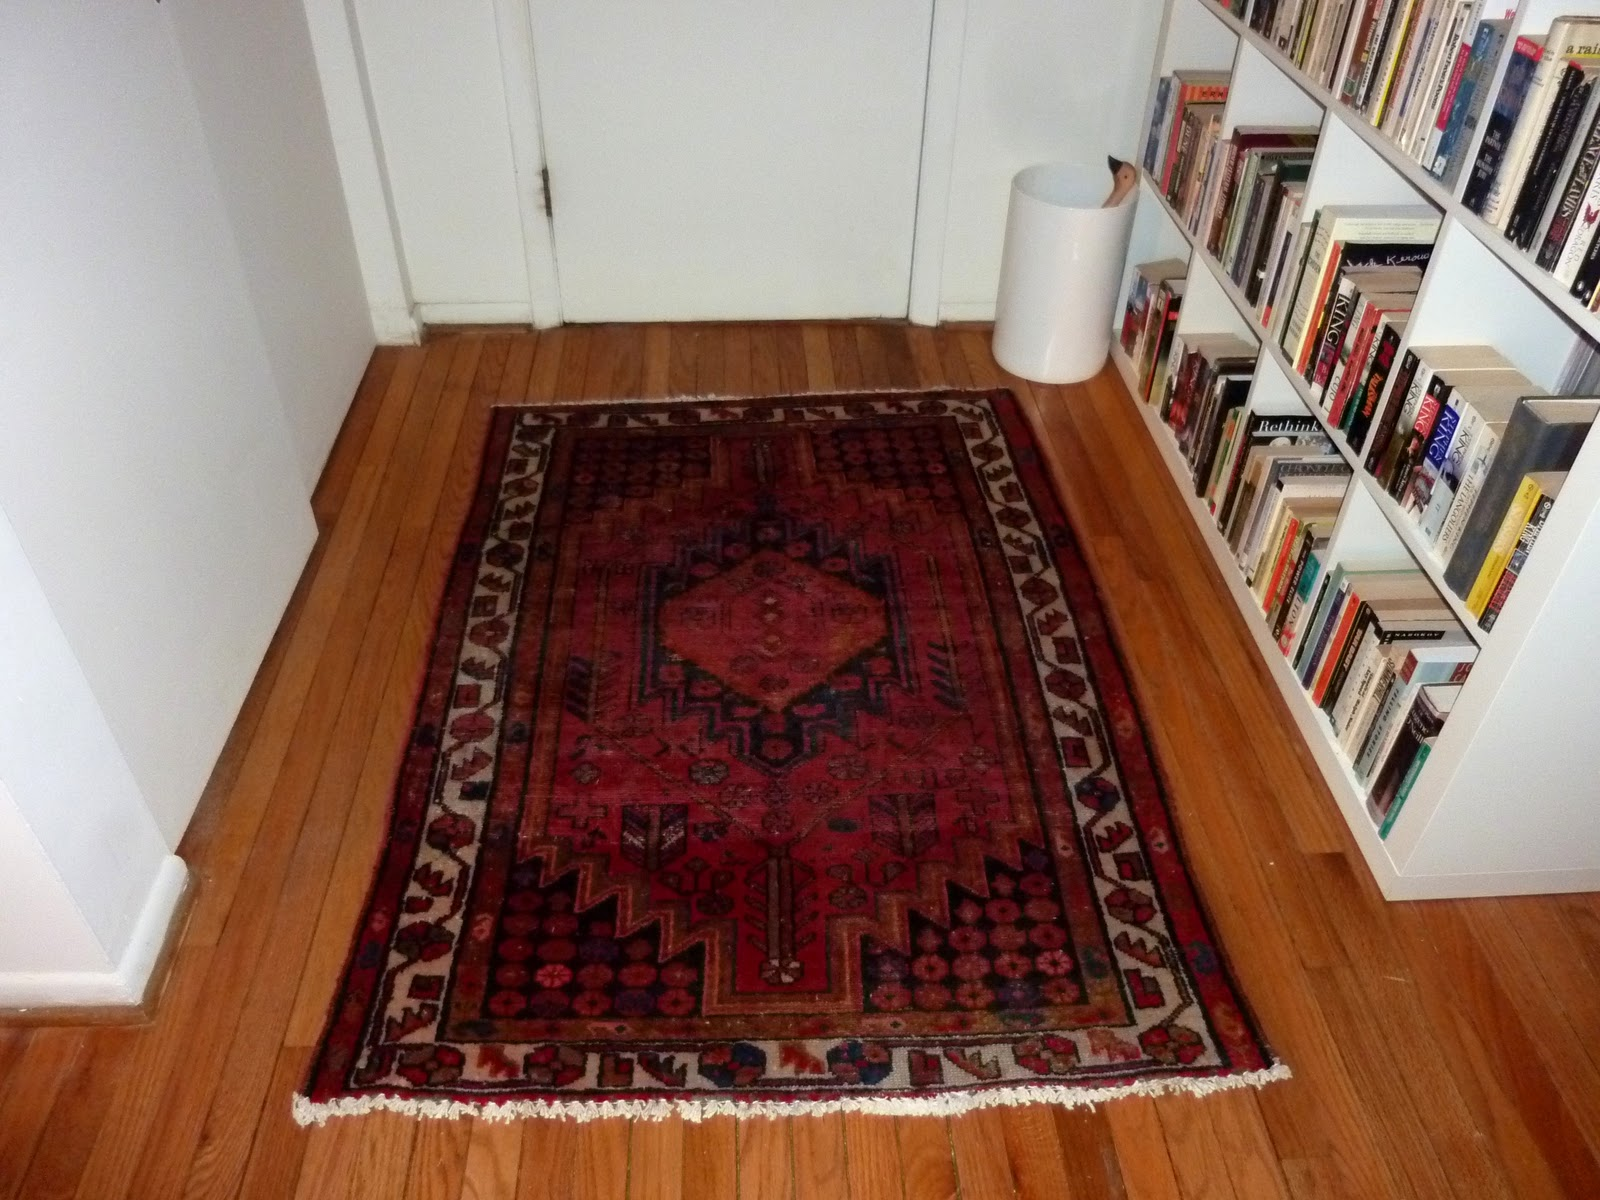 Foyer Rug Quarter : Meet me in philadelphia rug rotation